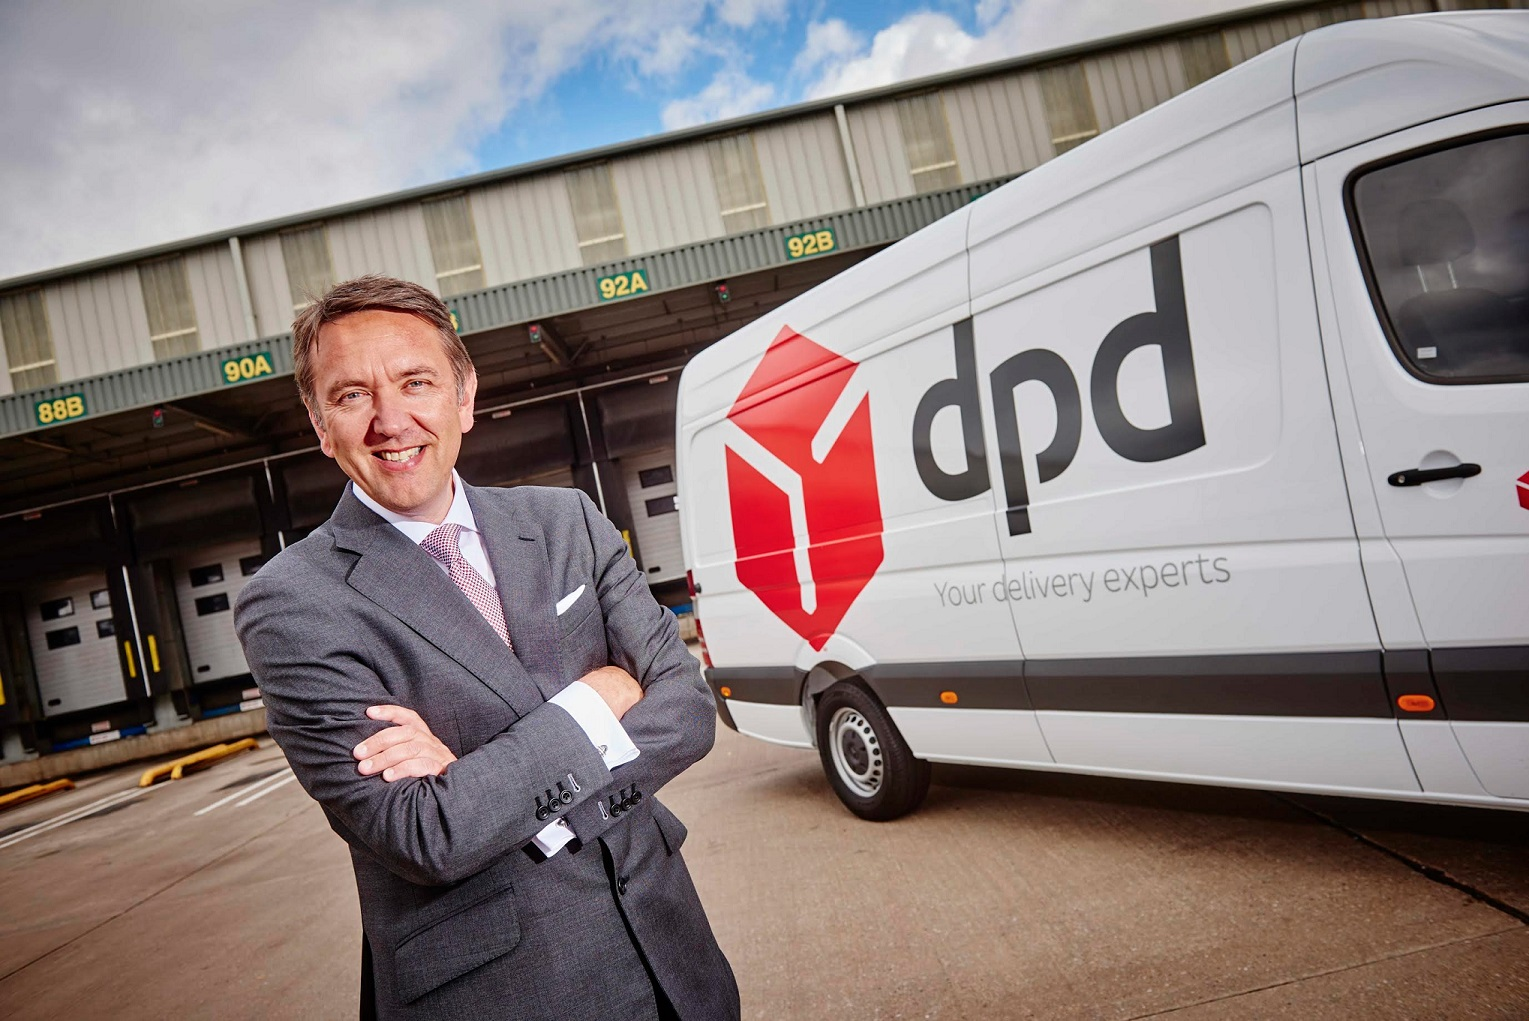 DPD UK Chief Executive has left the company